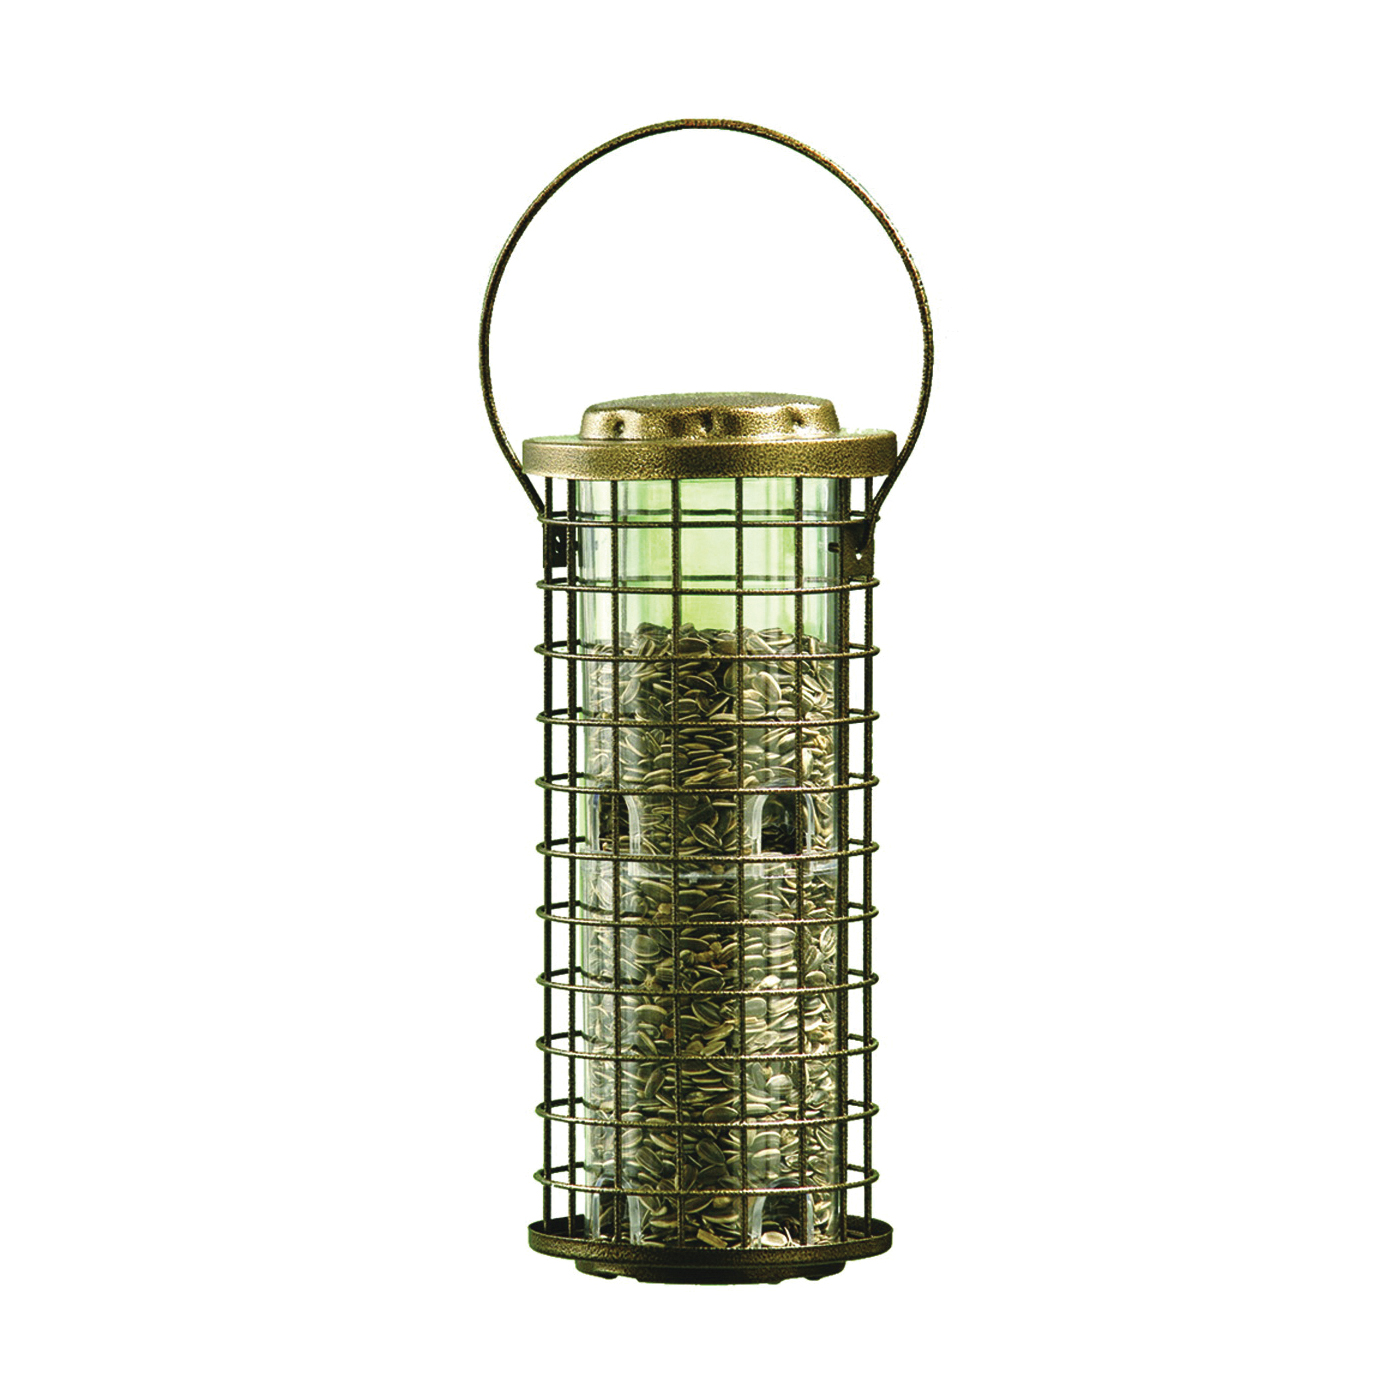 Picture of Perky-Pet 114 Squirrel Stumper Feeder, Metal/Plastic, Clear, Antique Gold, Hanging Mounting